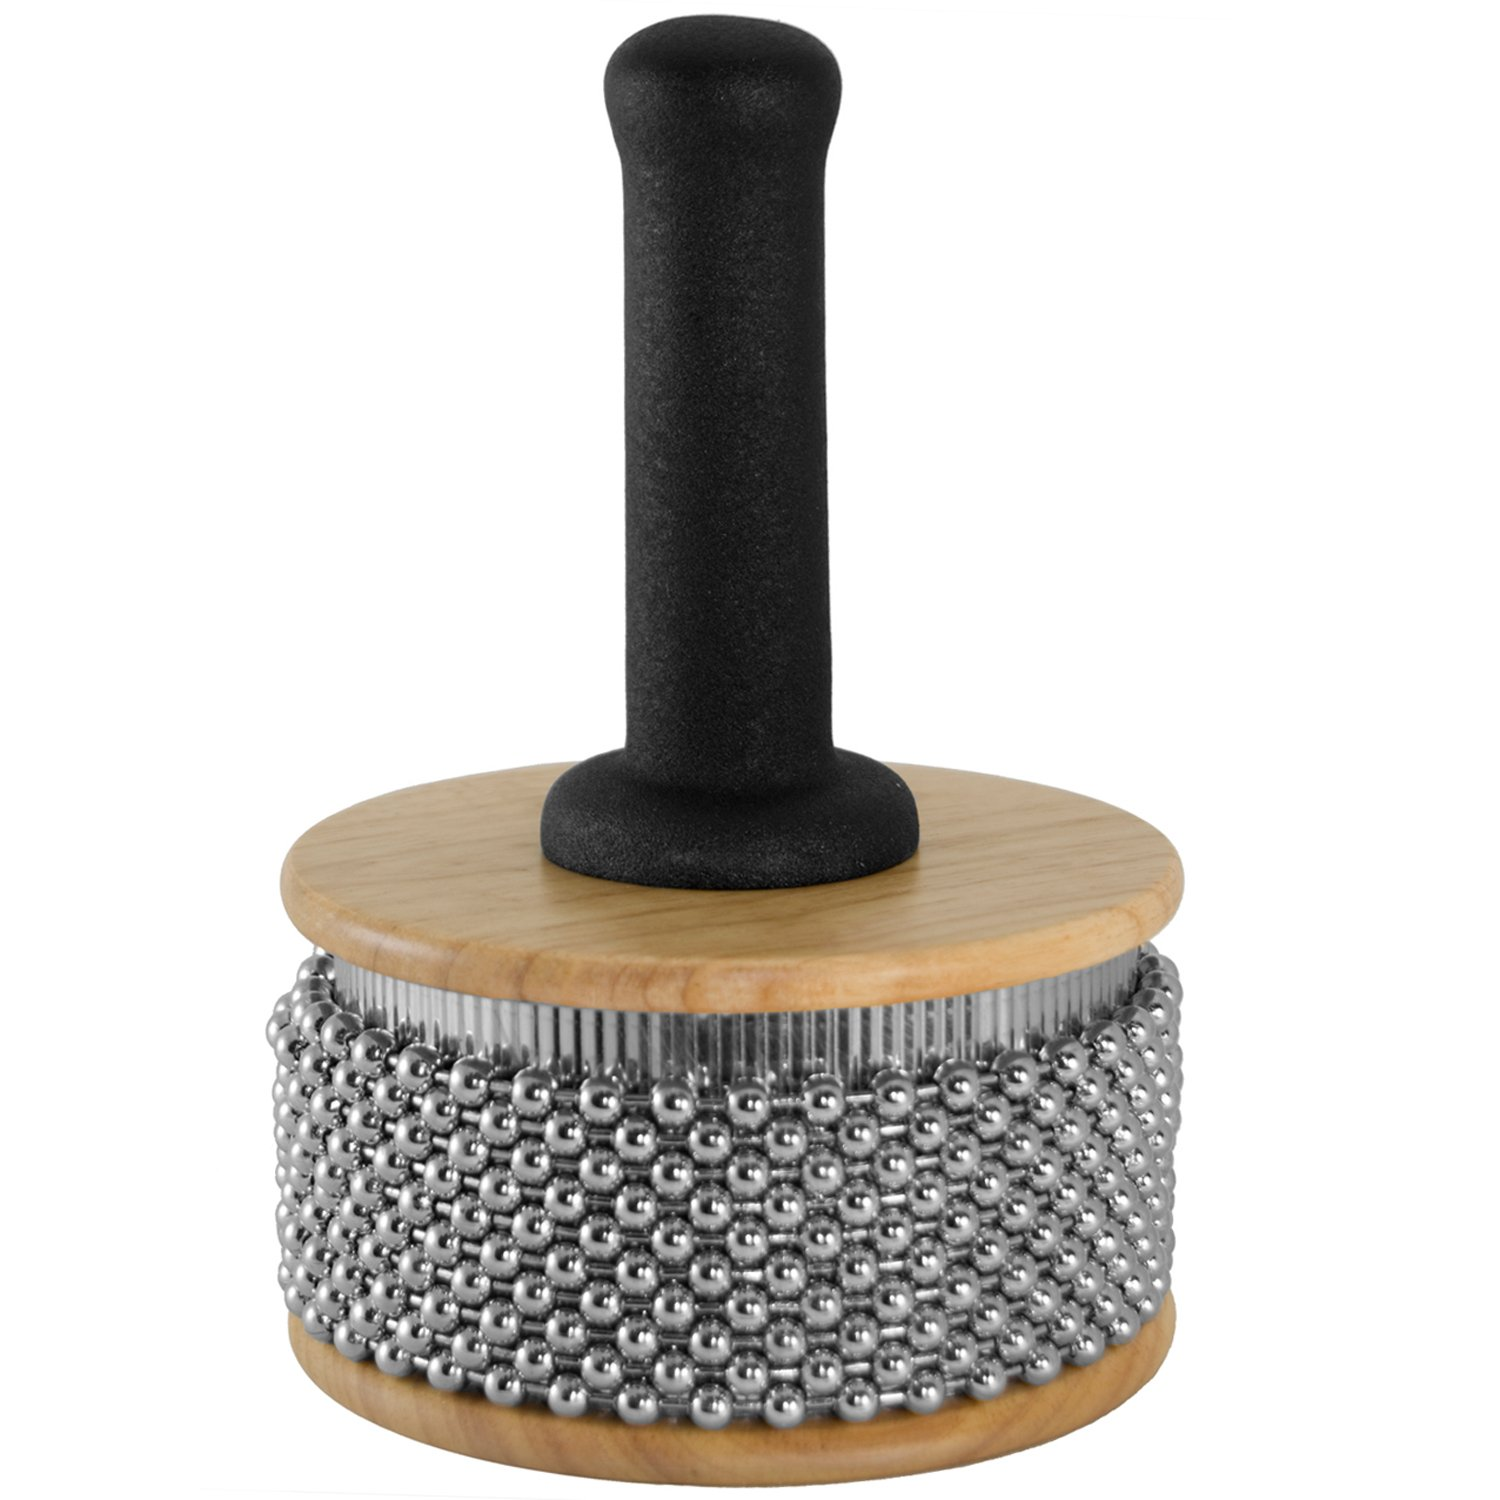 Tiger Large Wooden Cabasa - Rubber Coated Handle and Steel Ball Cylinder by Tiger Music